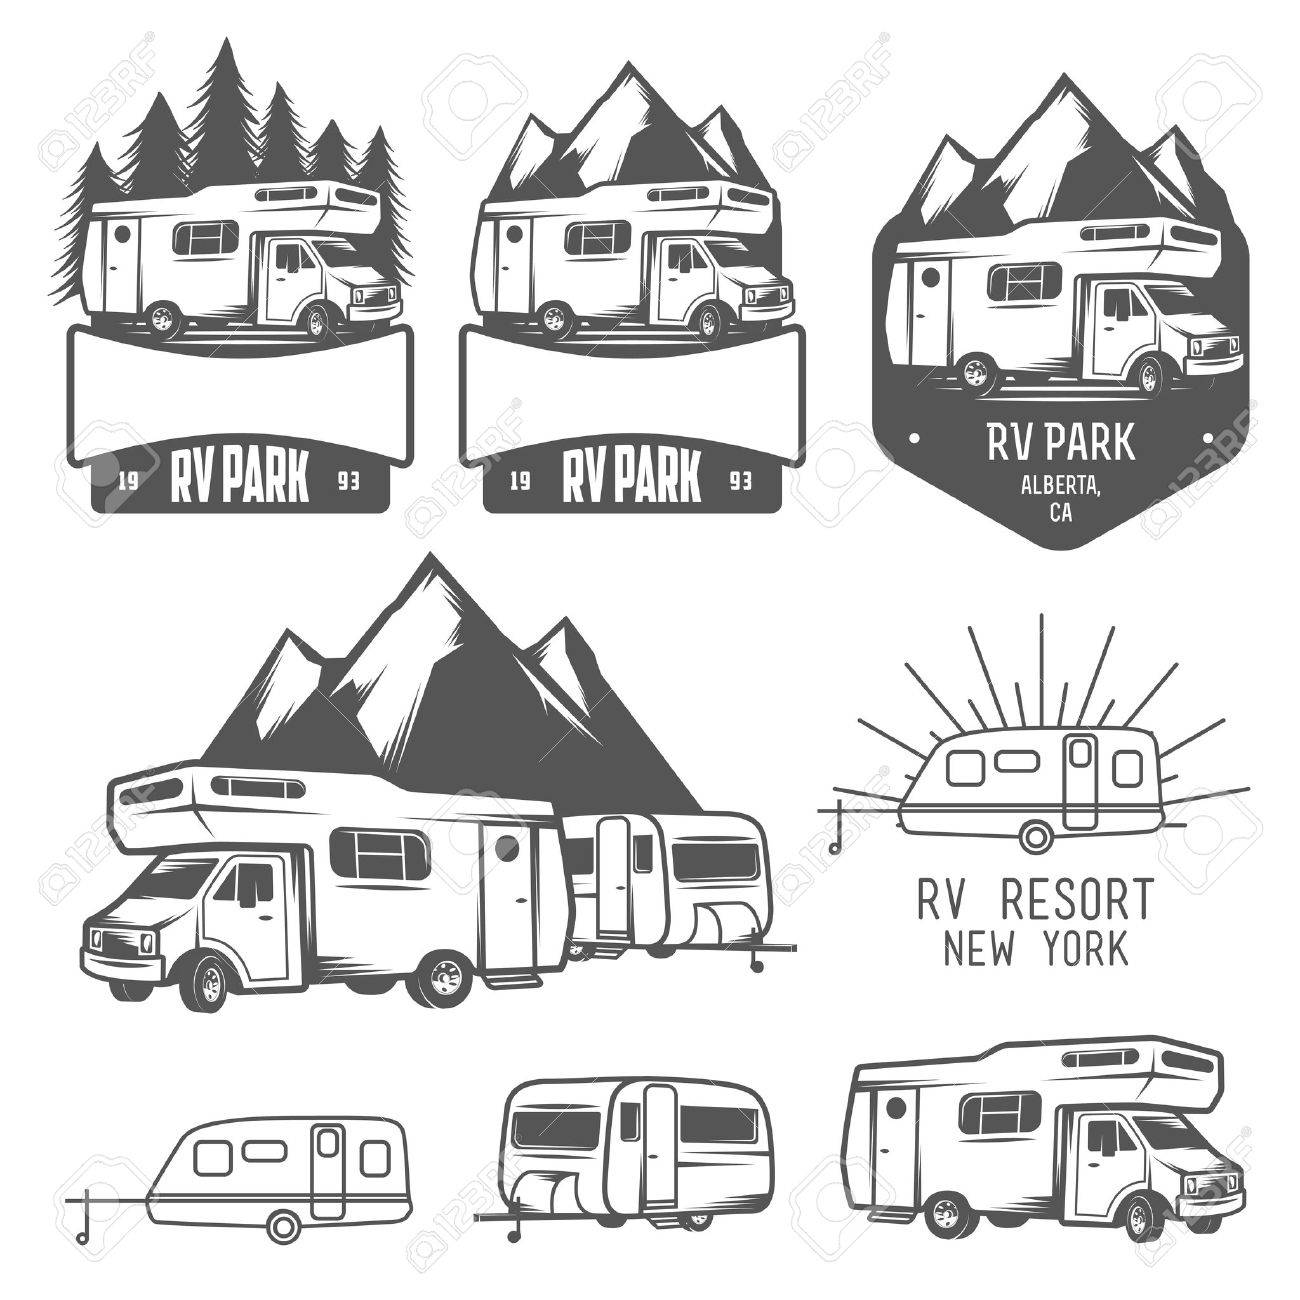 Rv Images & Stock Pictures. Royalty Free Rv Photos And Stock ...